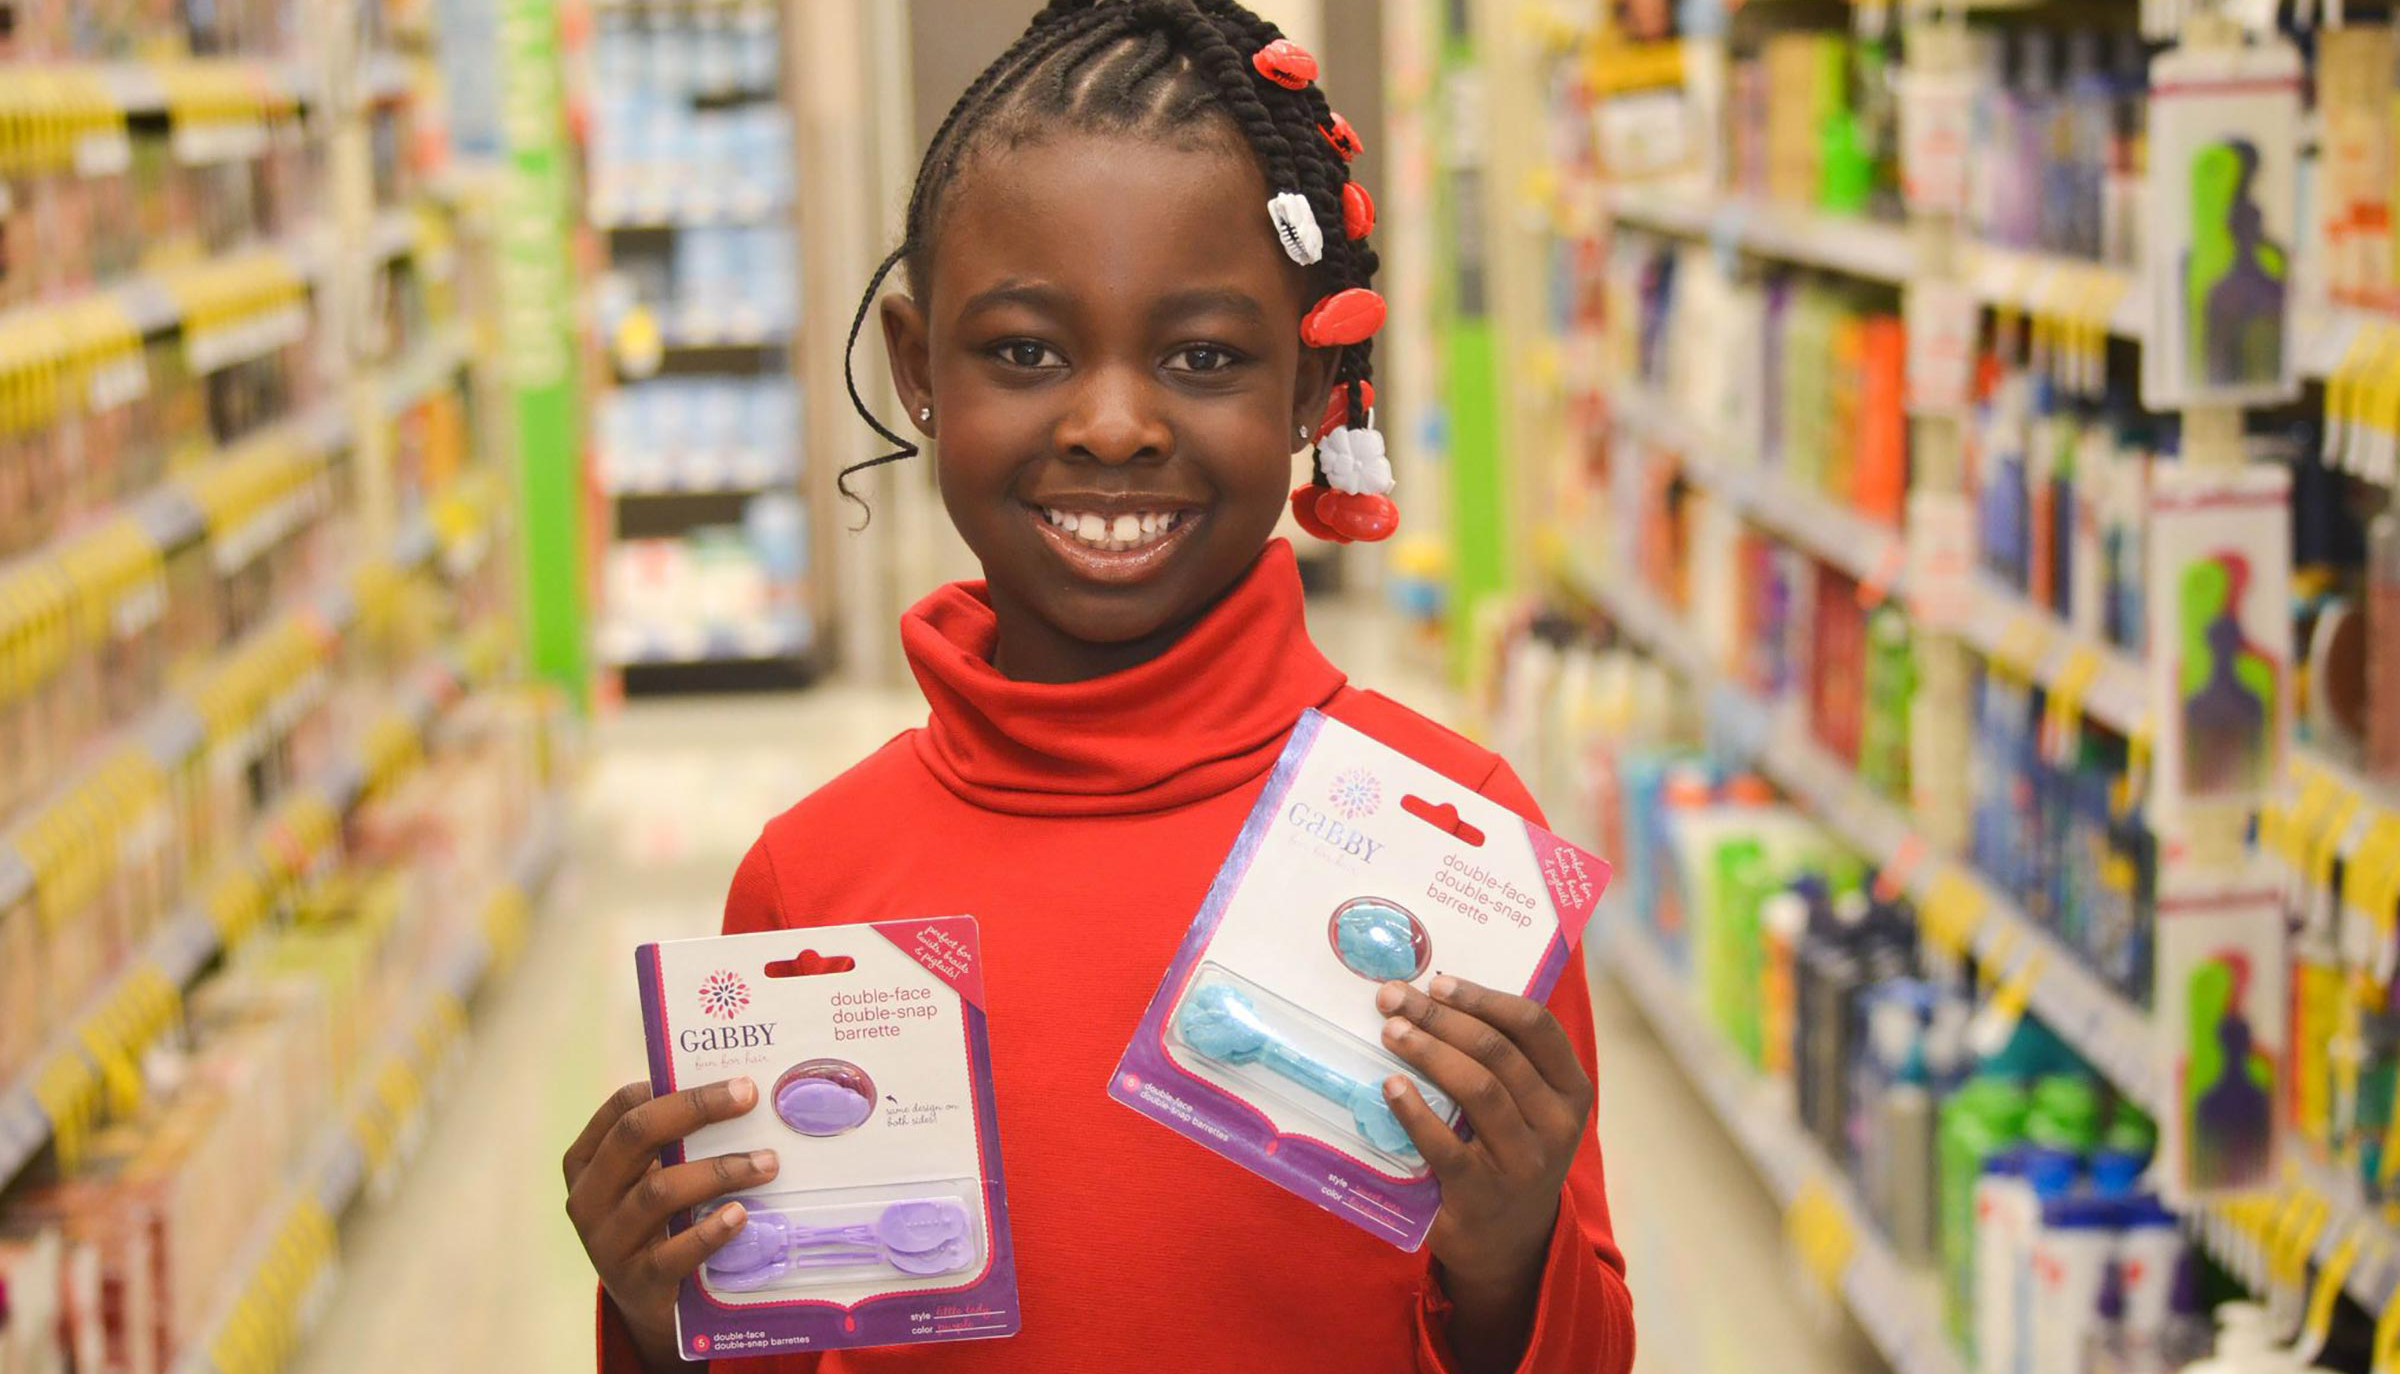 12-YEAR-OLD GABRIELLE GOODWIN LANDS A MEGA-RETAIL DEAL WITH TARGET